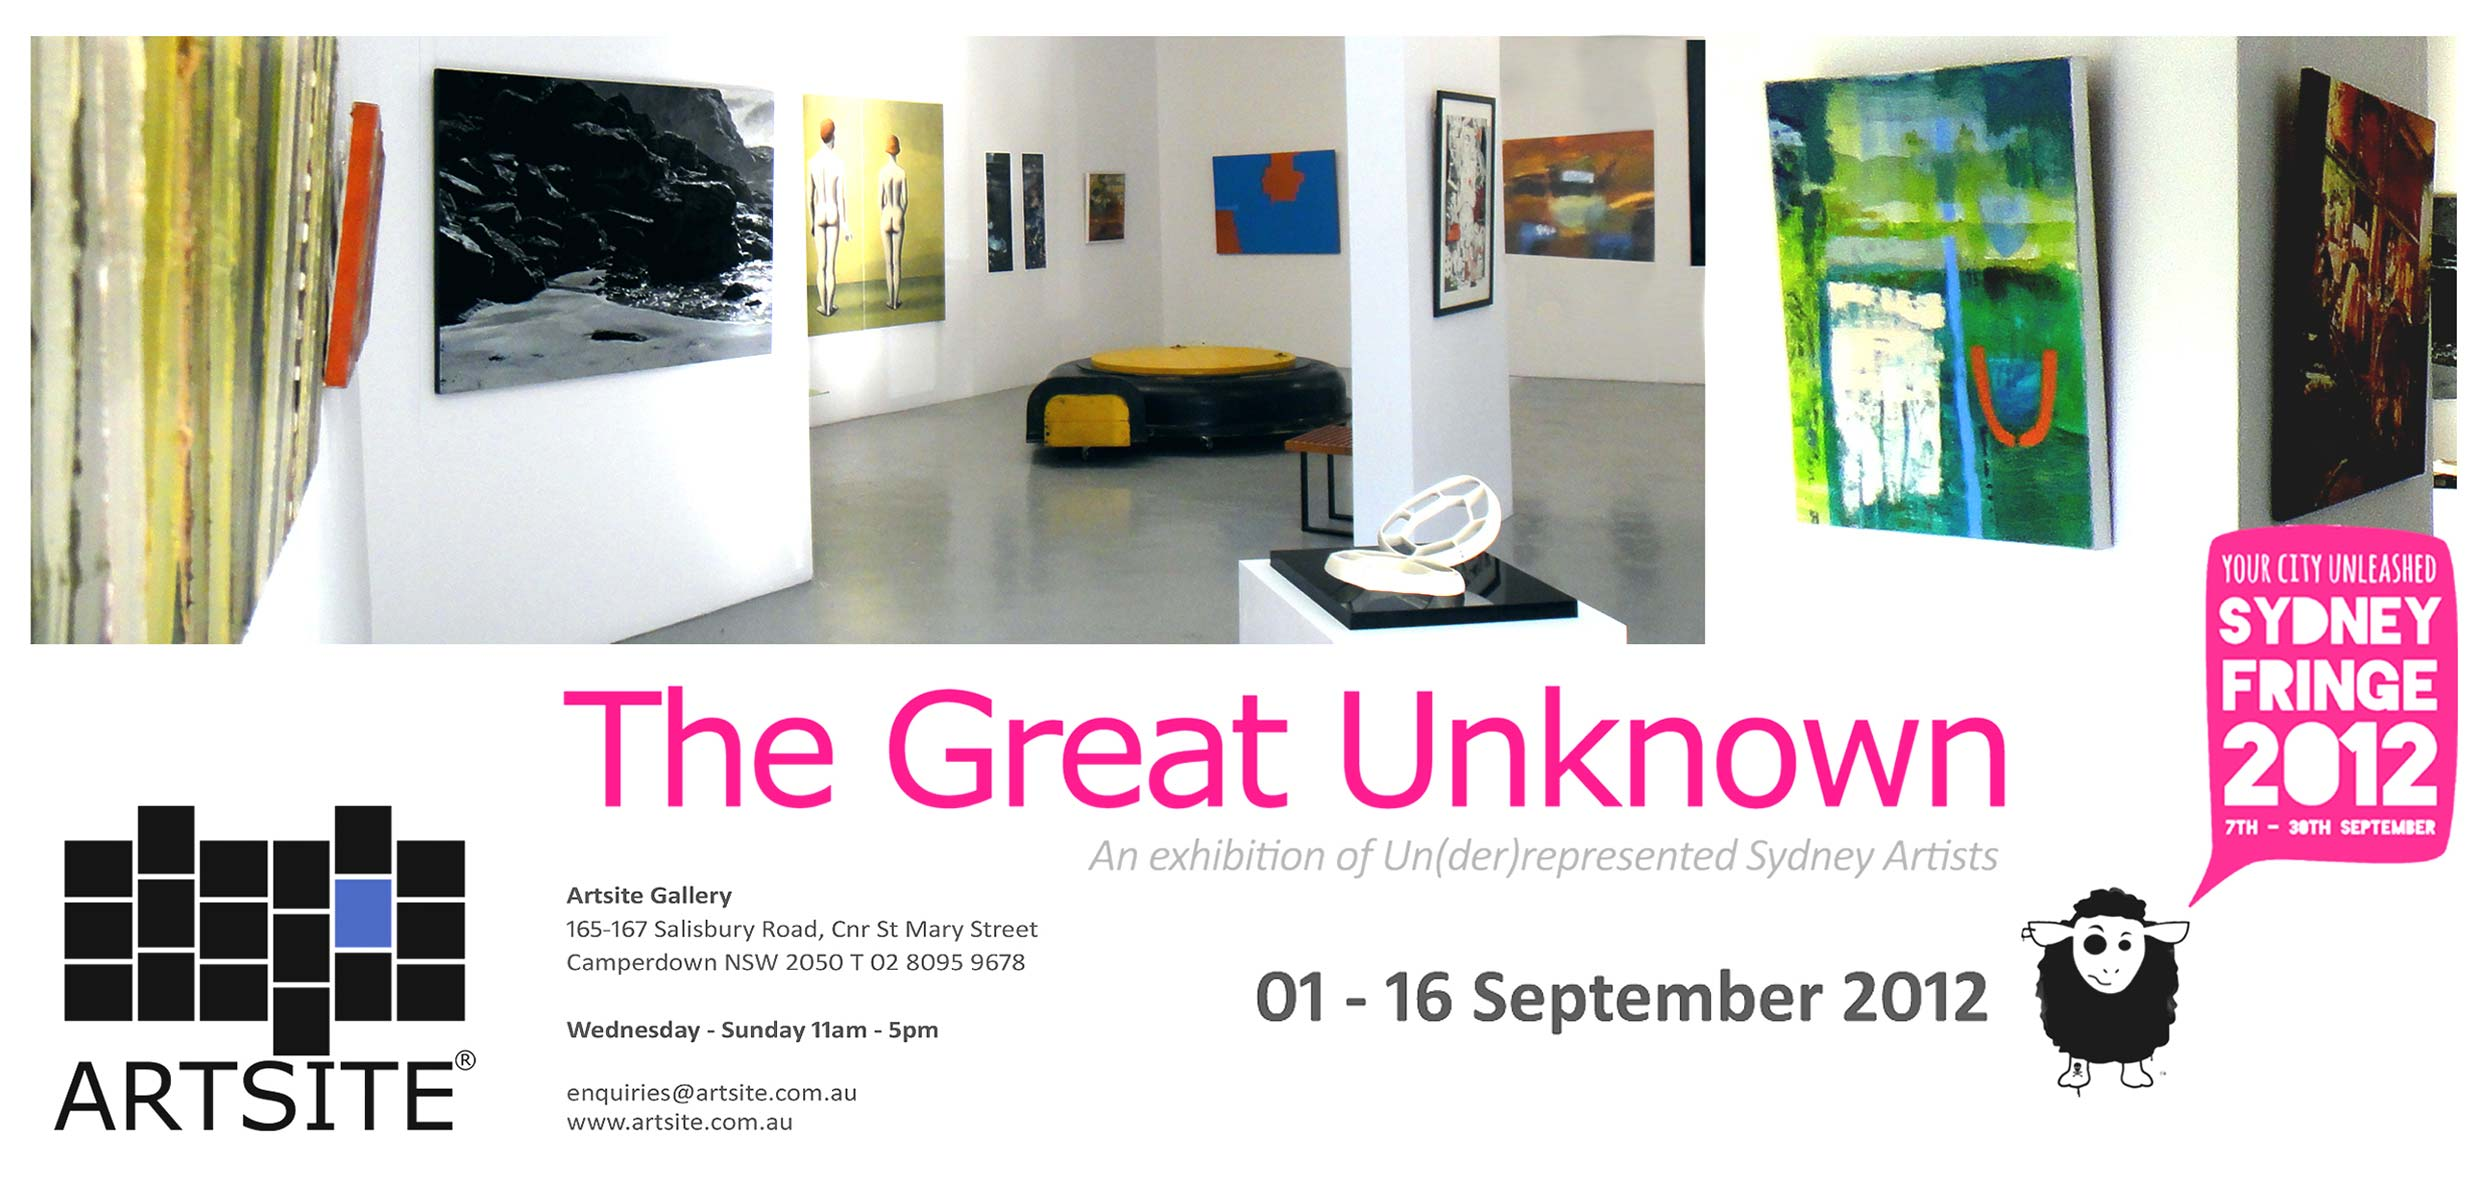 GU12 - The Great Unknown 2012 - A Curated Exhibition of Un(der)Represented Sydney Artists - An Official Selection of the Sydney Fringe Festival 2012.